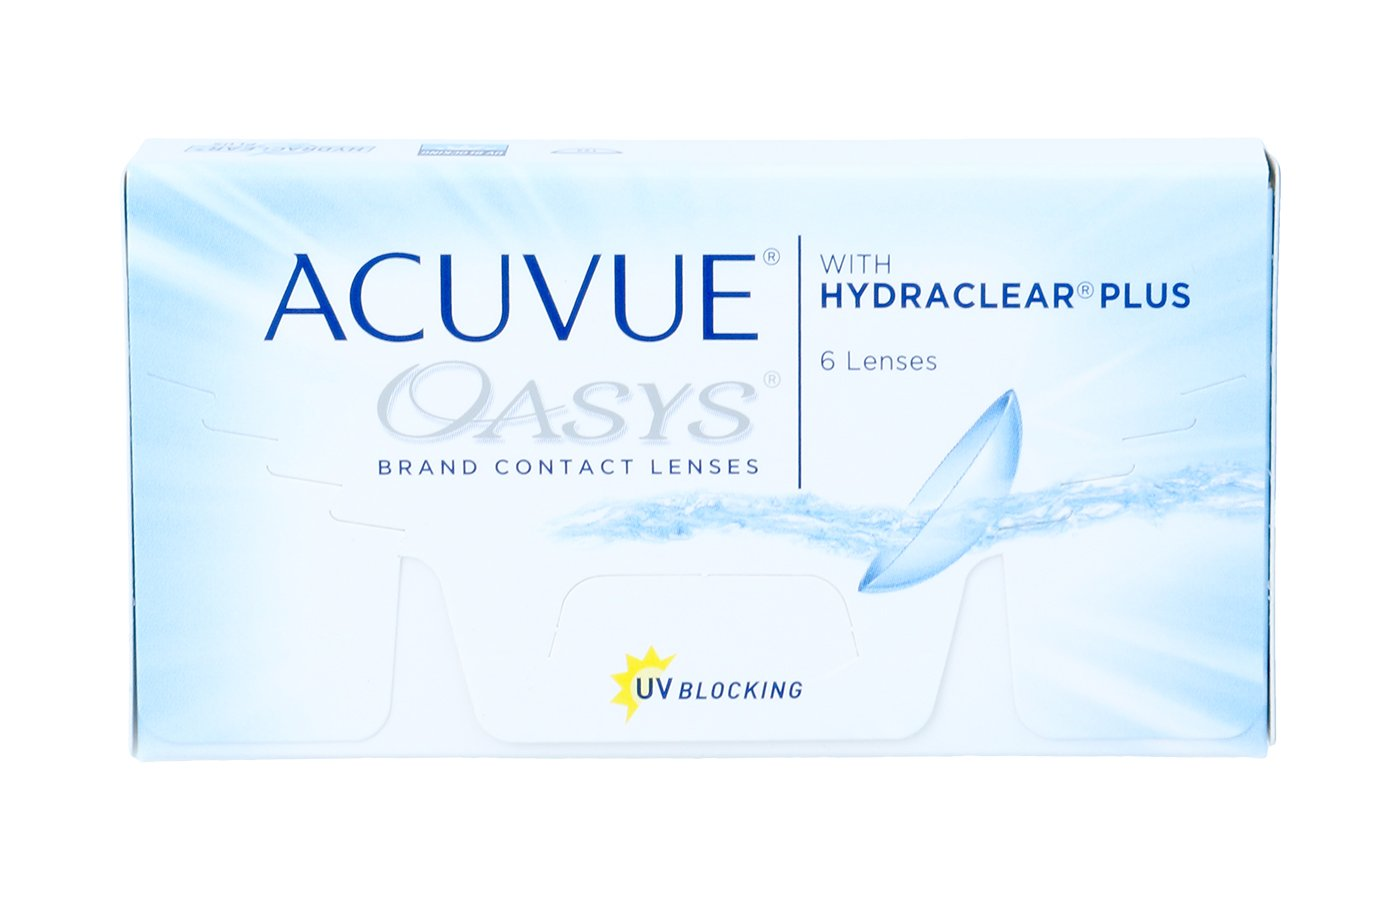 Acuvue Oasys with Hydraclear Plus 6 ud